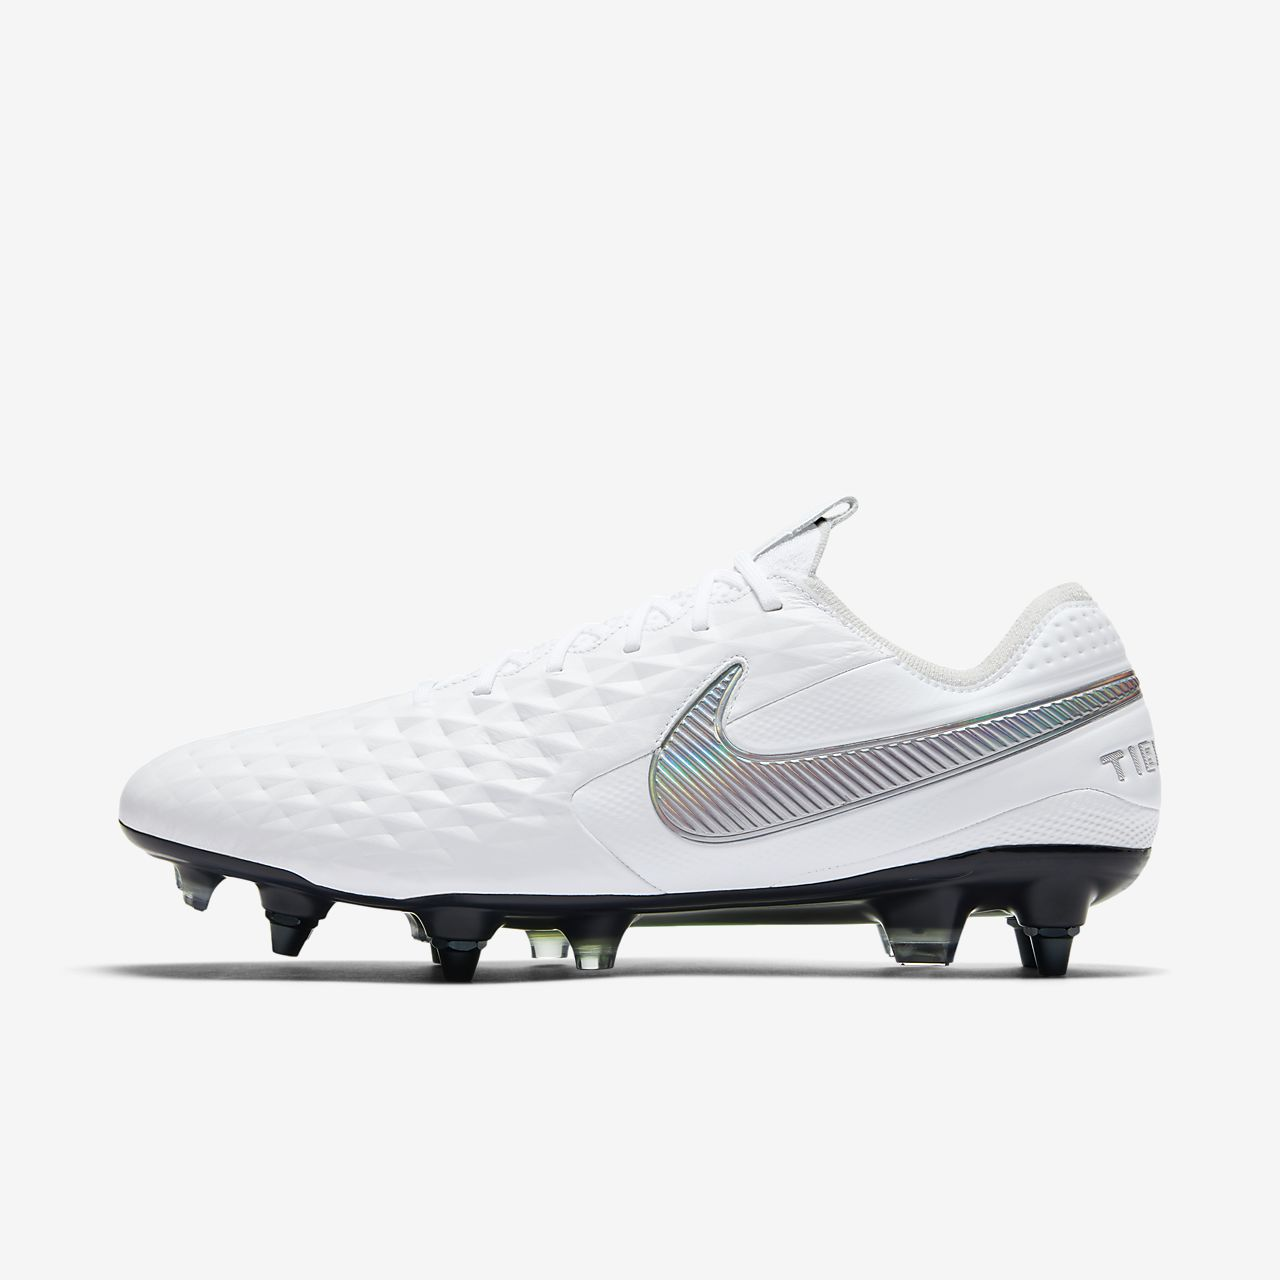 Chaussure de football à crampons pour terrain gras Nike Tiempo Legend 8 Elite SG-PRO Anti-Clog Traction